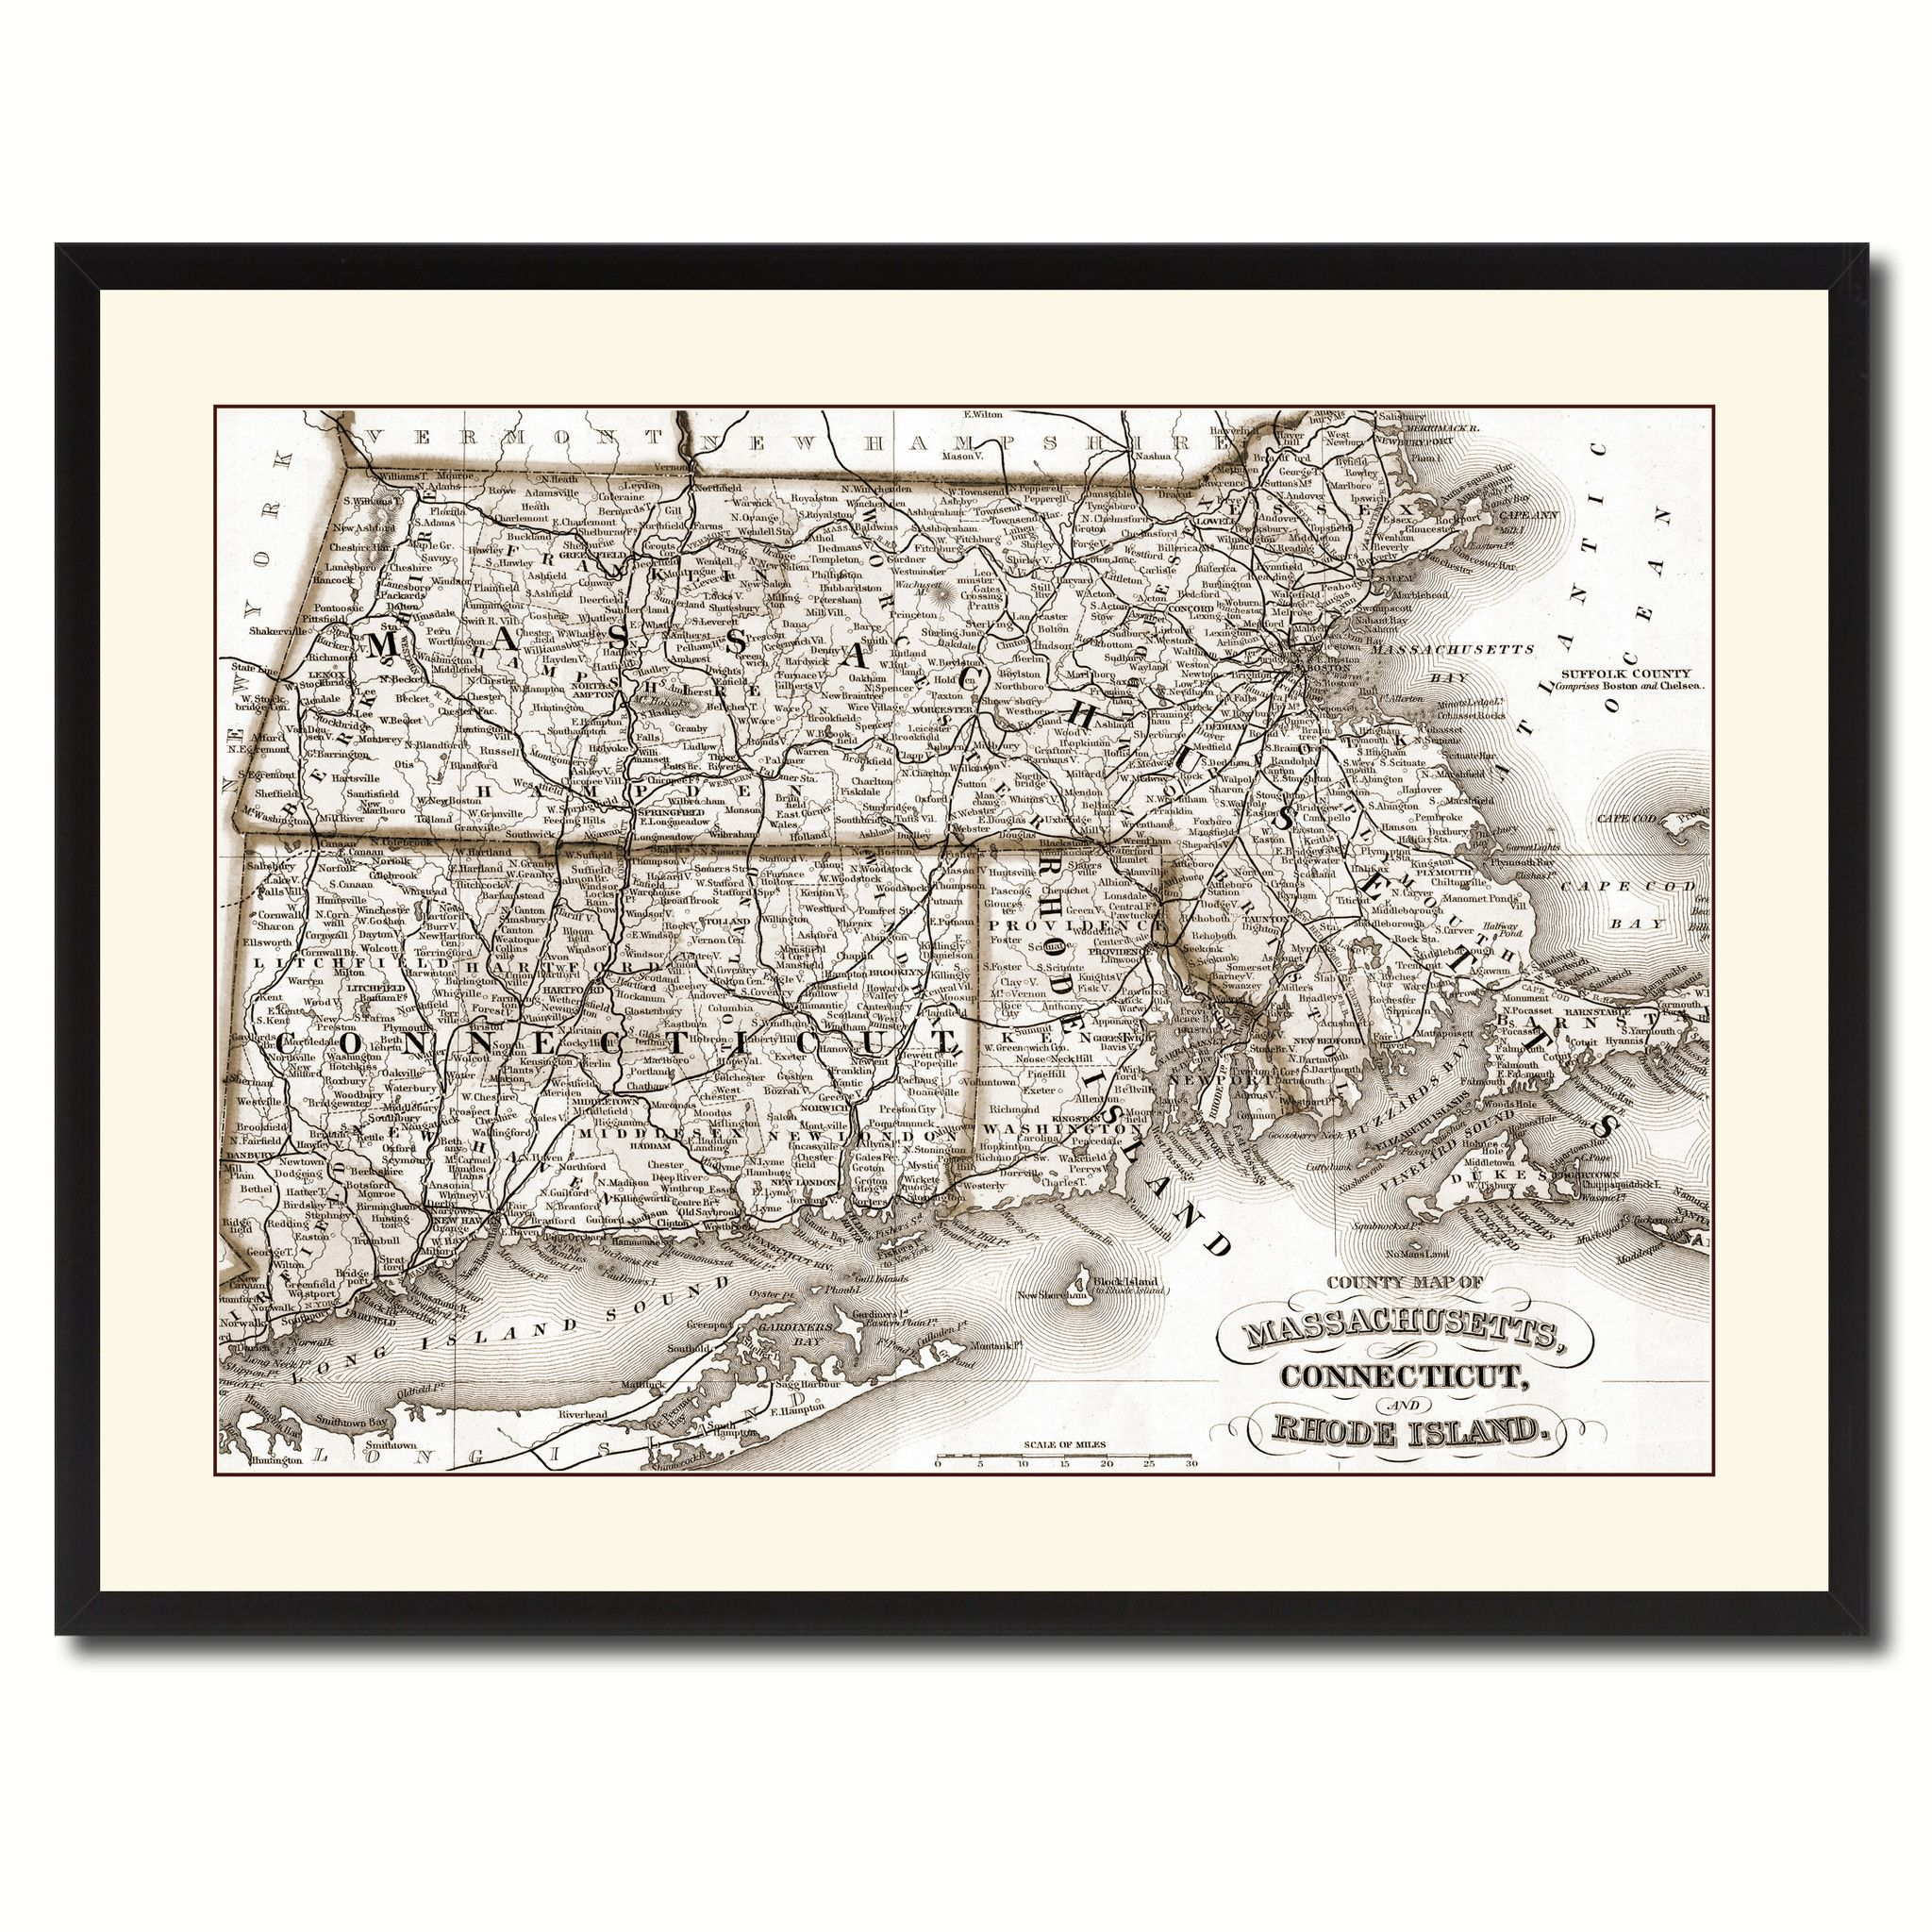 Massachusetts Connecticut Rhode Island Vintage Sepia Map Canvas Print, Picture